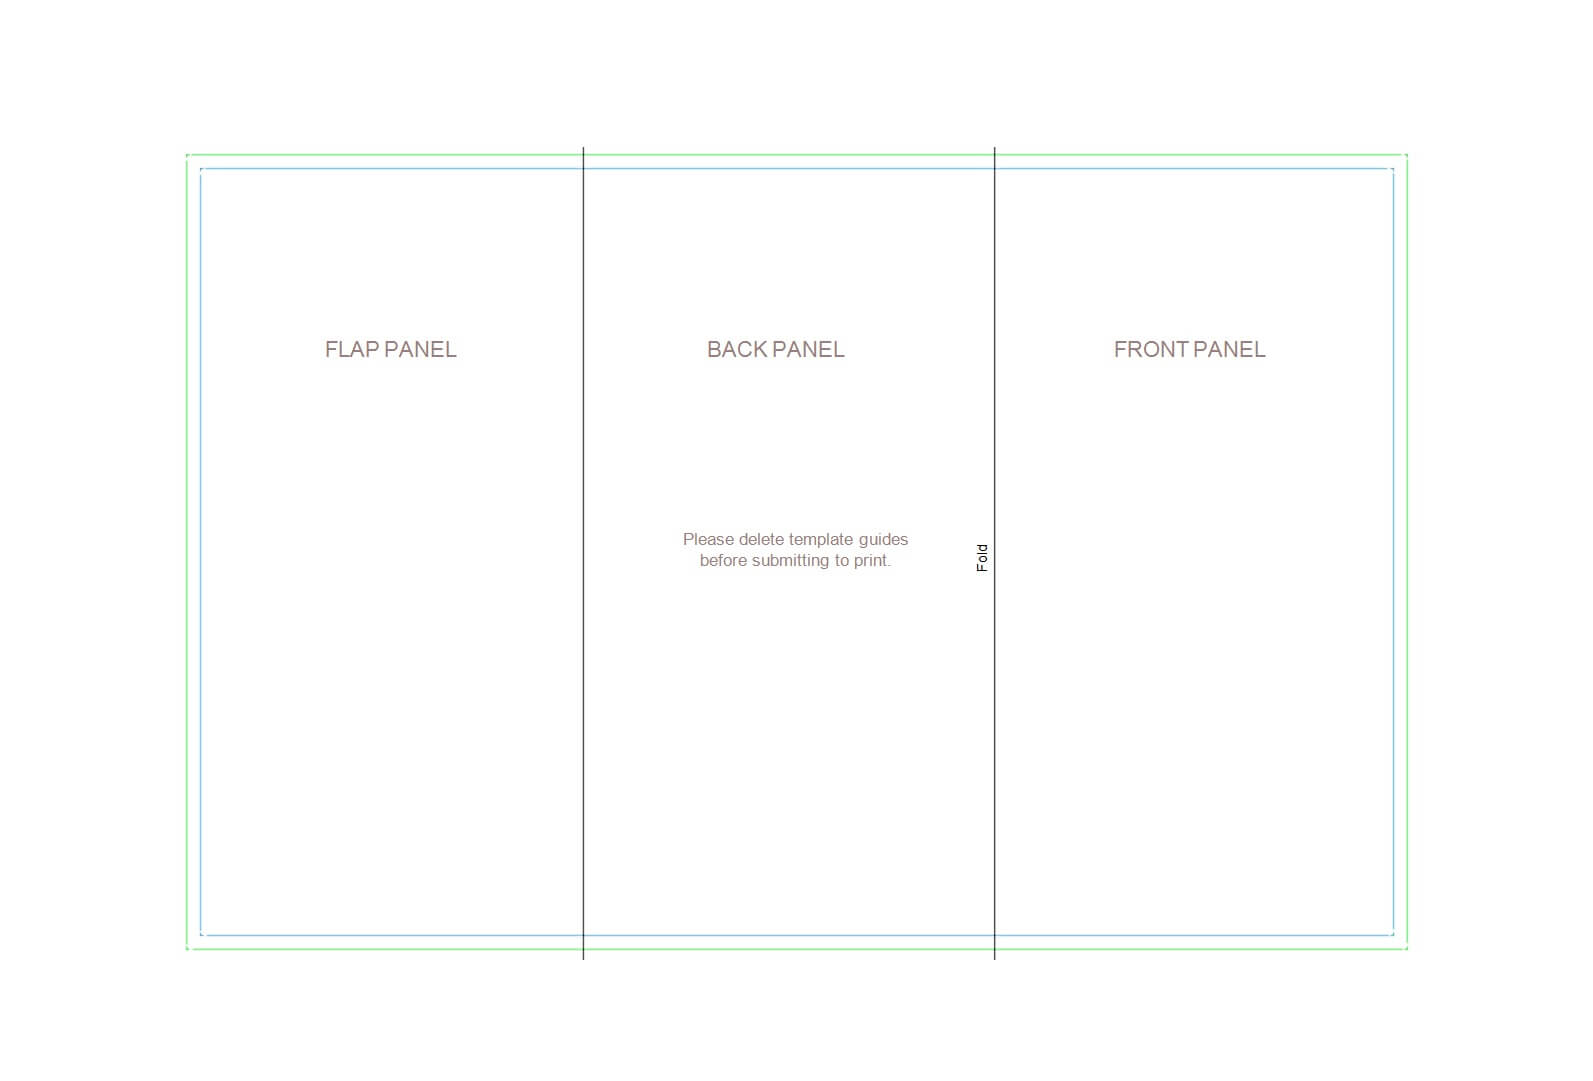 50 Free Pamphlet Templates [Word / Google Docs] ᐅ Template Lab Within Brochure Template For Google Docs